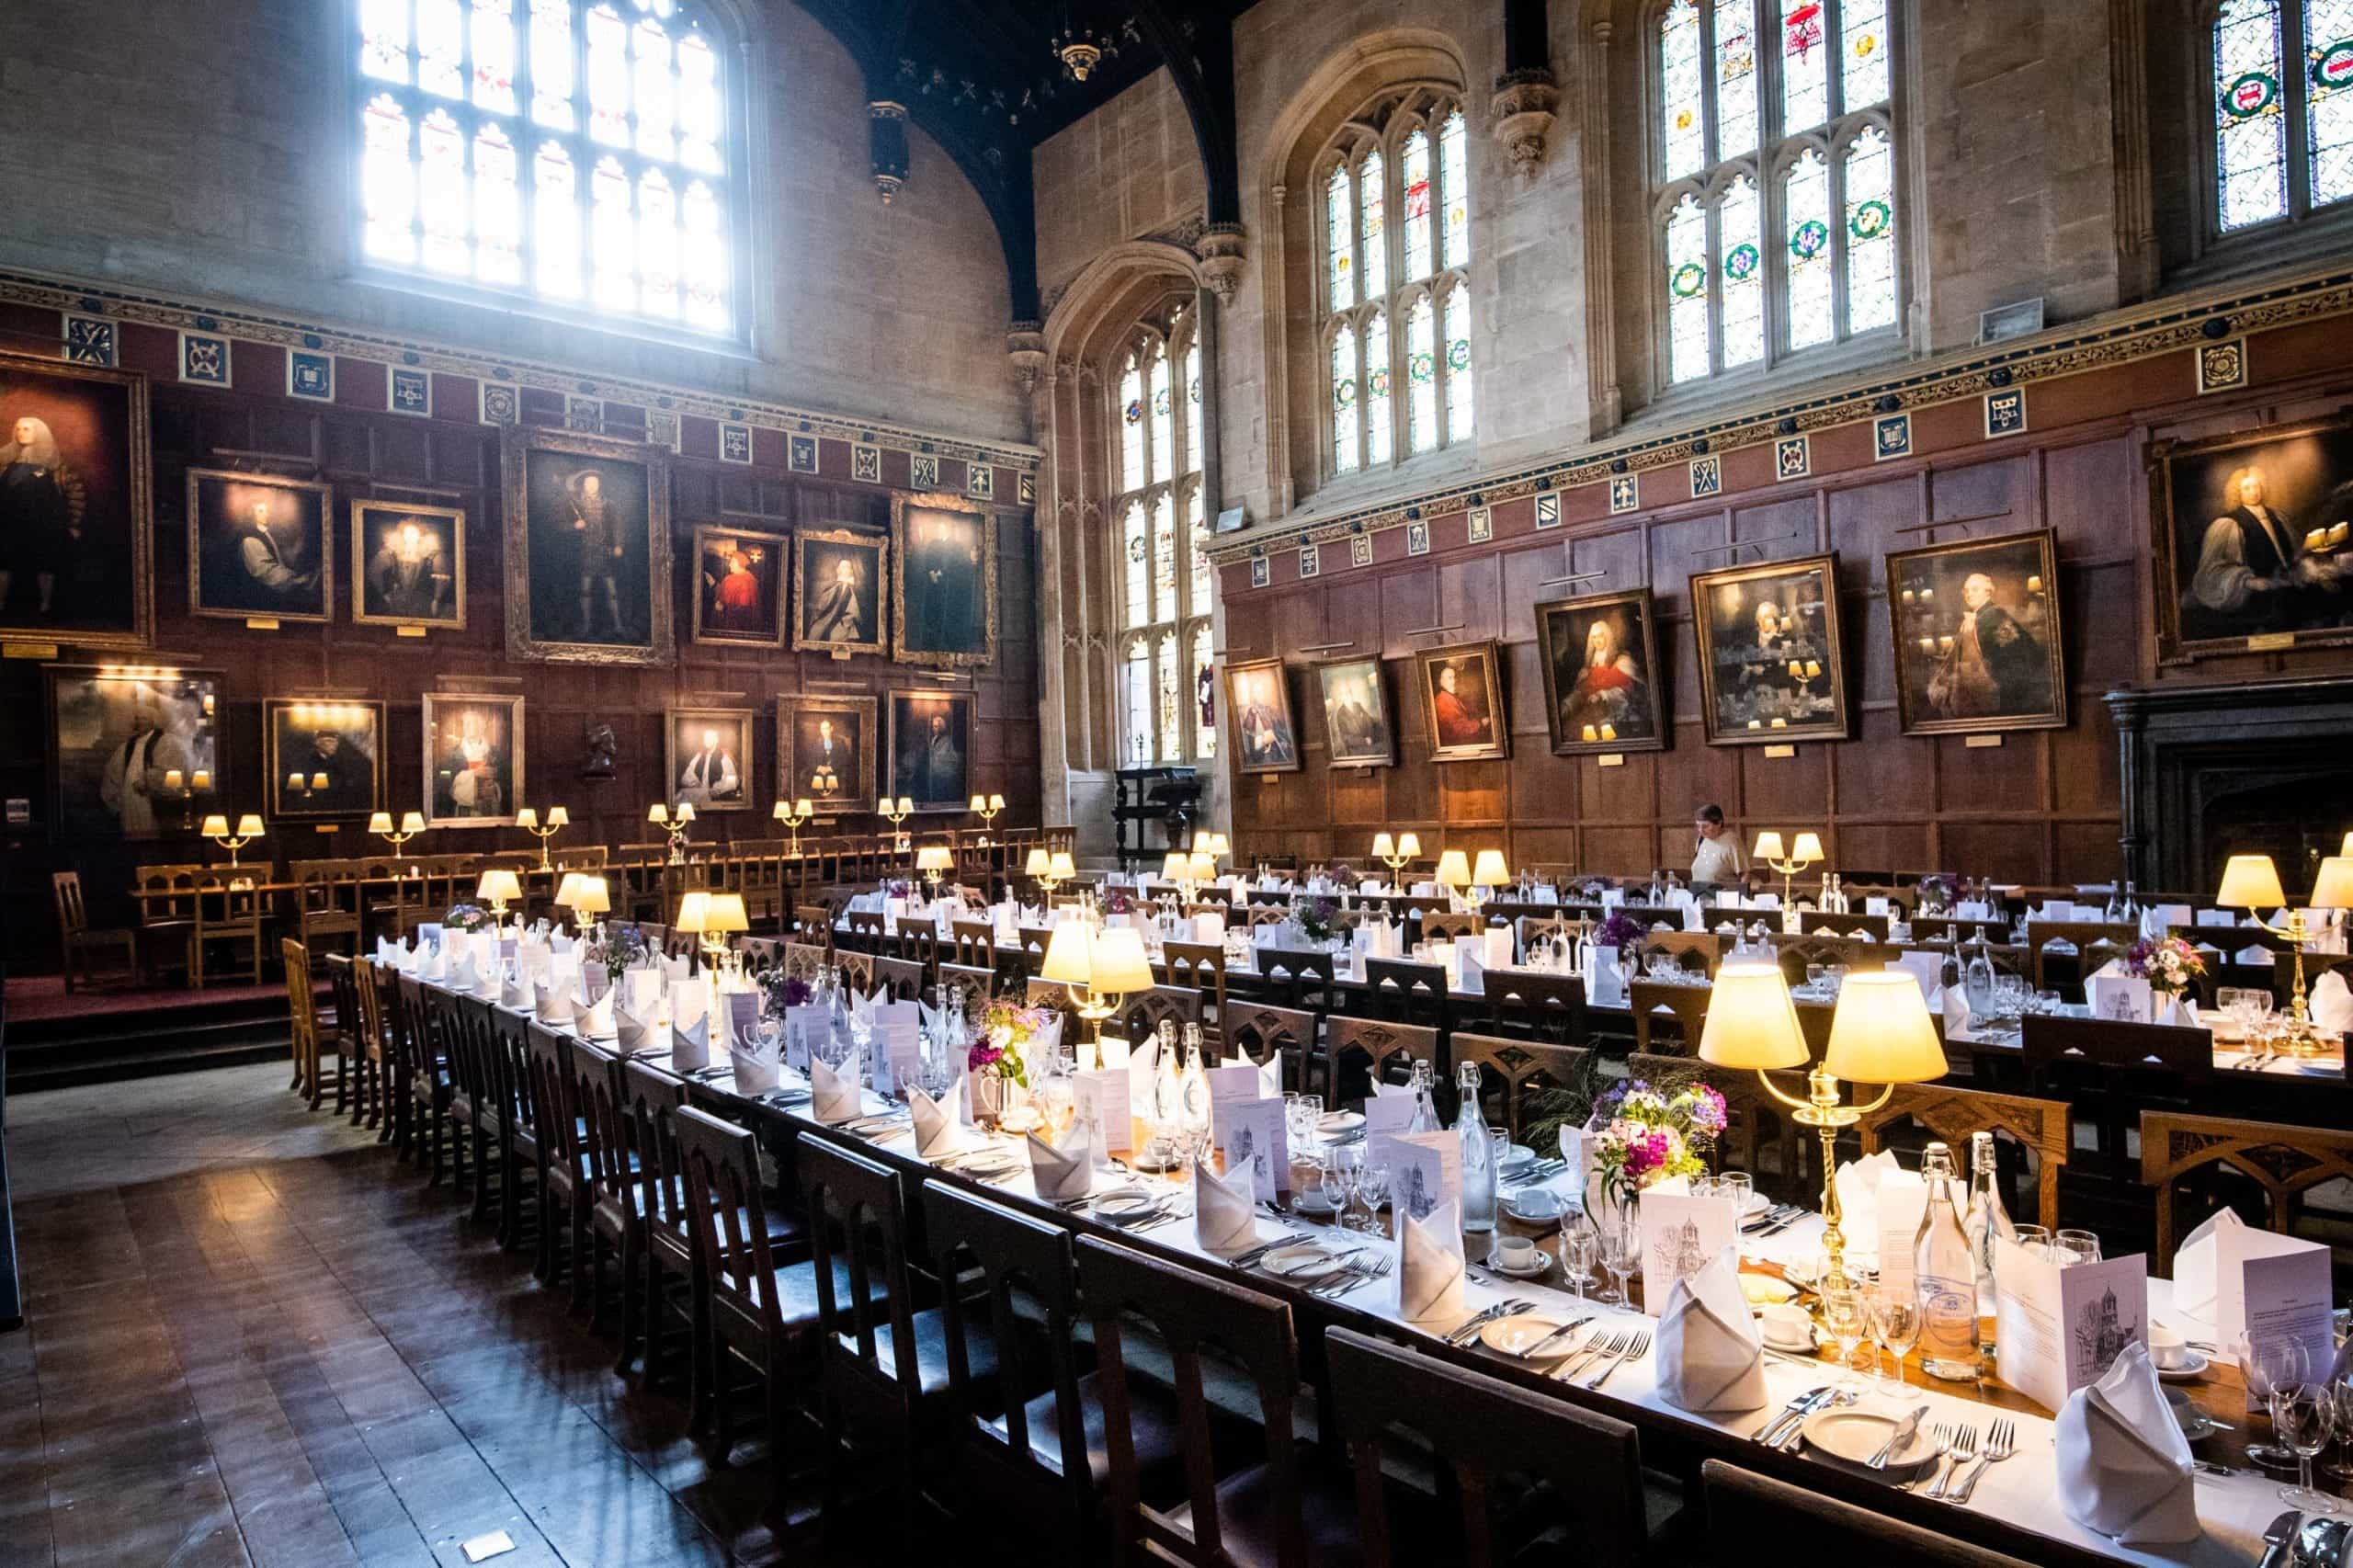 christ-church-dining-hall-inspired-harry-potter-great-hall